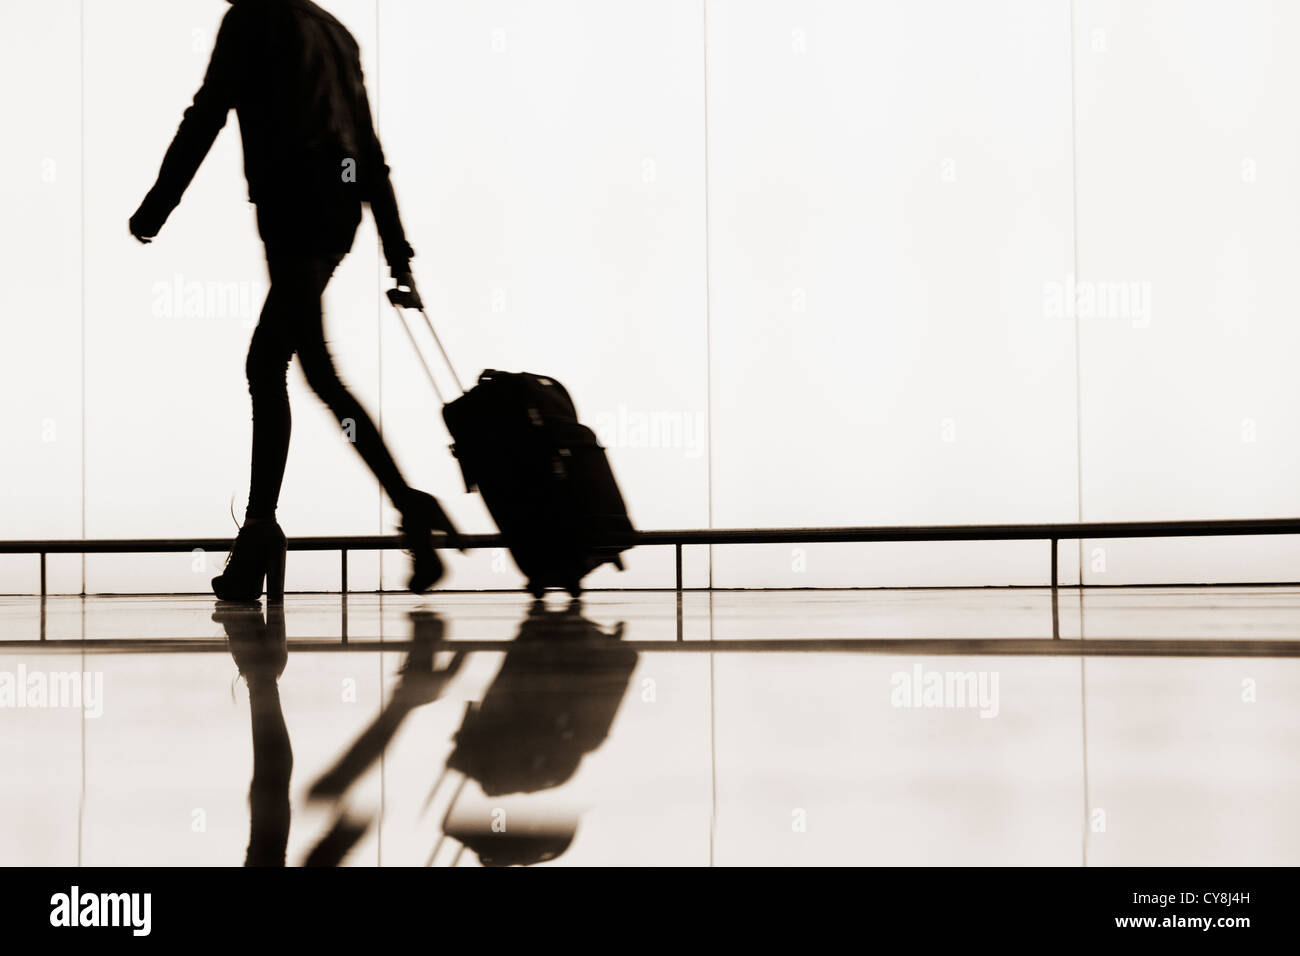 Woman with wheeled hand luggage at El Prat airport. Barcelona, Spain - Stock Image